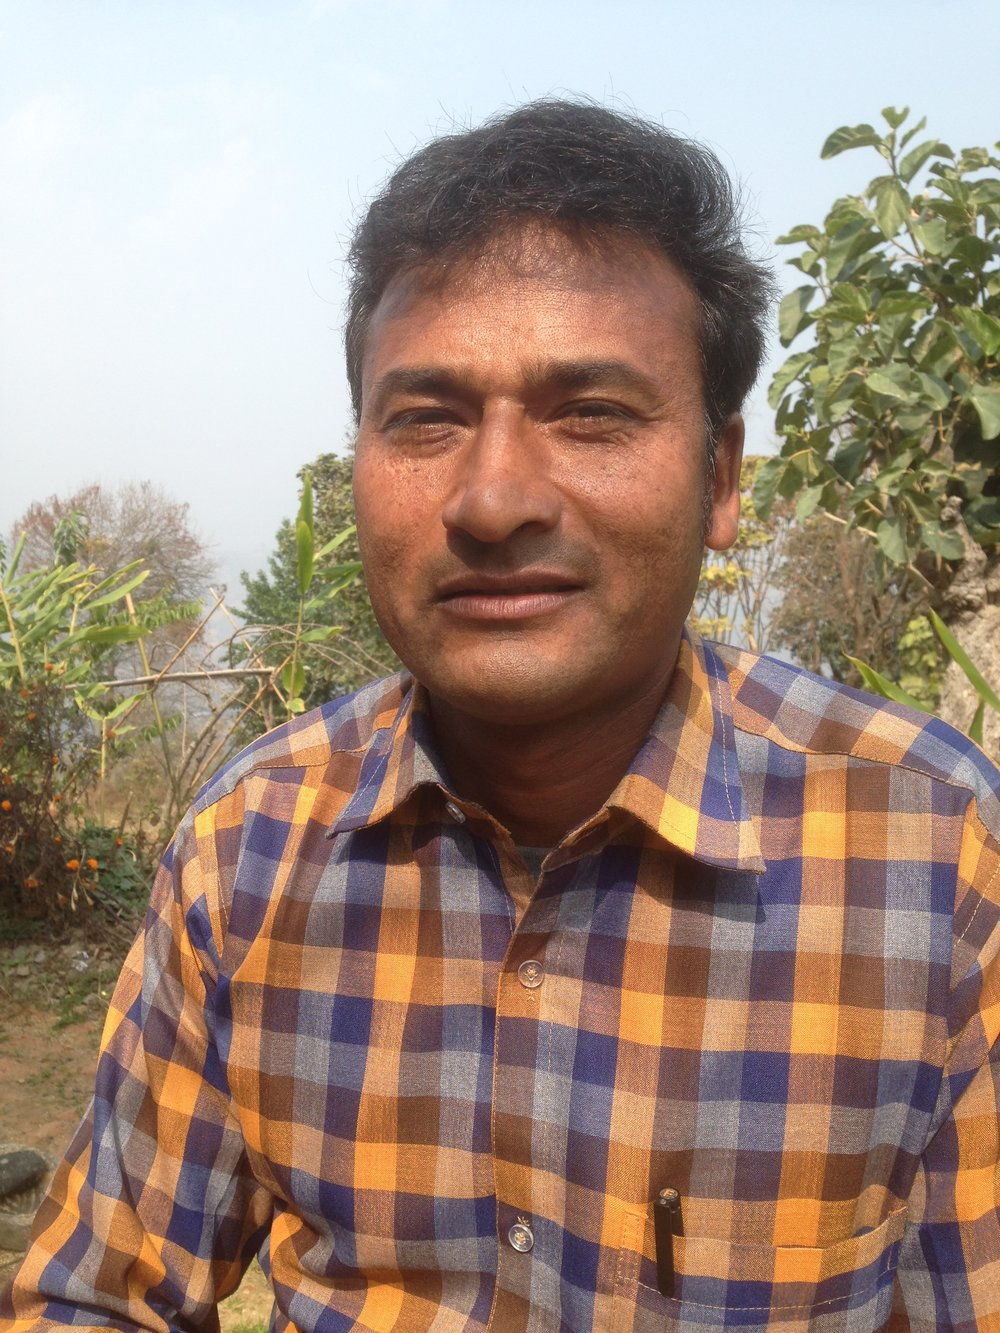 Binod Puri, Supervisor & Co-Trainer - Binod has been with Everything Organic since its inception, about 8 years. He had much prior training & experience in orchard and organic farming prior to working at EVON, including many trainings and a technical degree. He worked for 5 years at Dhulikhel Mountain Resort as an orchard and garden assistant.